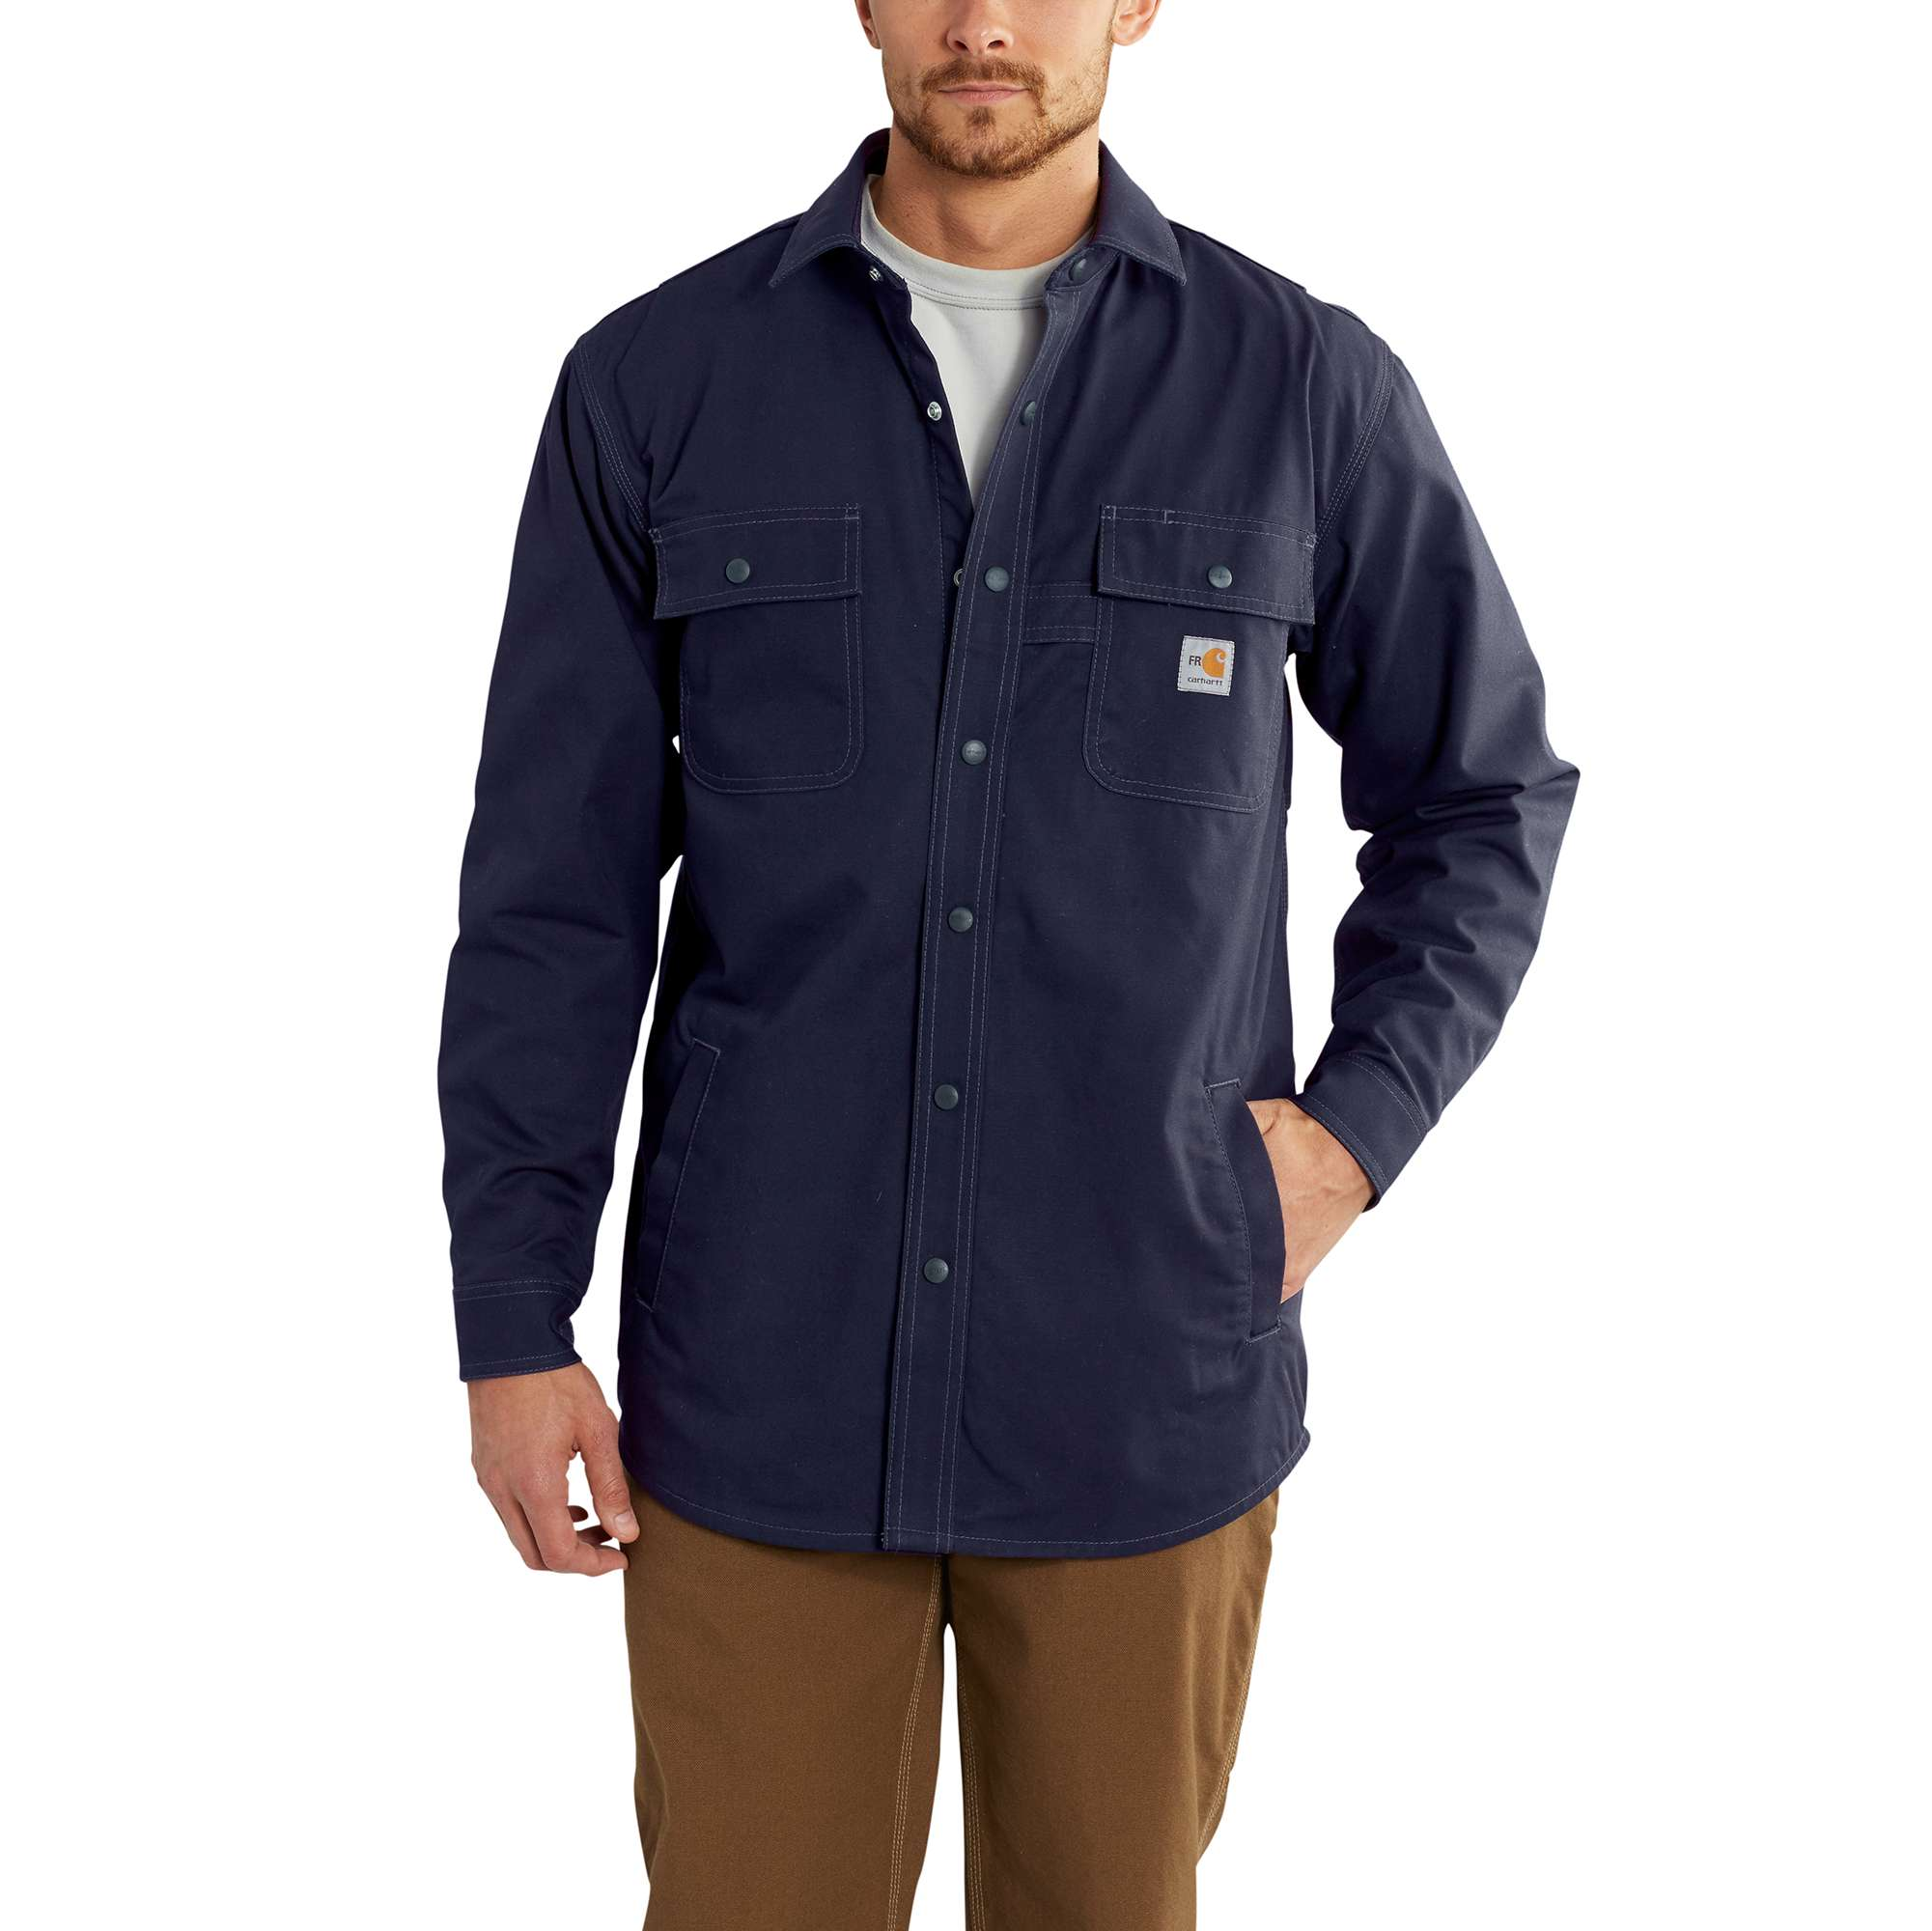 Carhartt Flame-Resistant Full Swing Quick Duck Shirt Jac